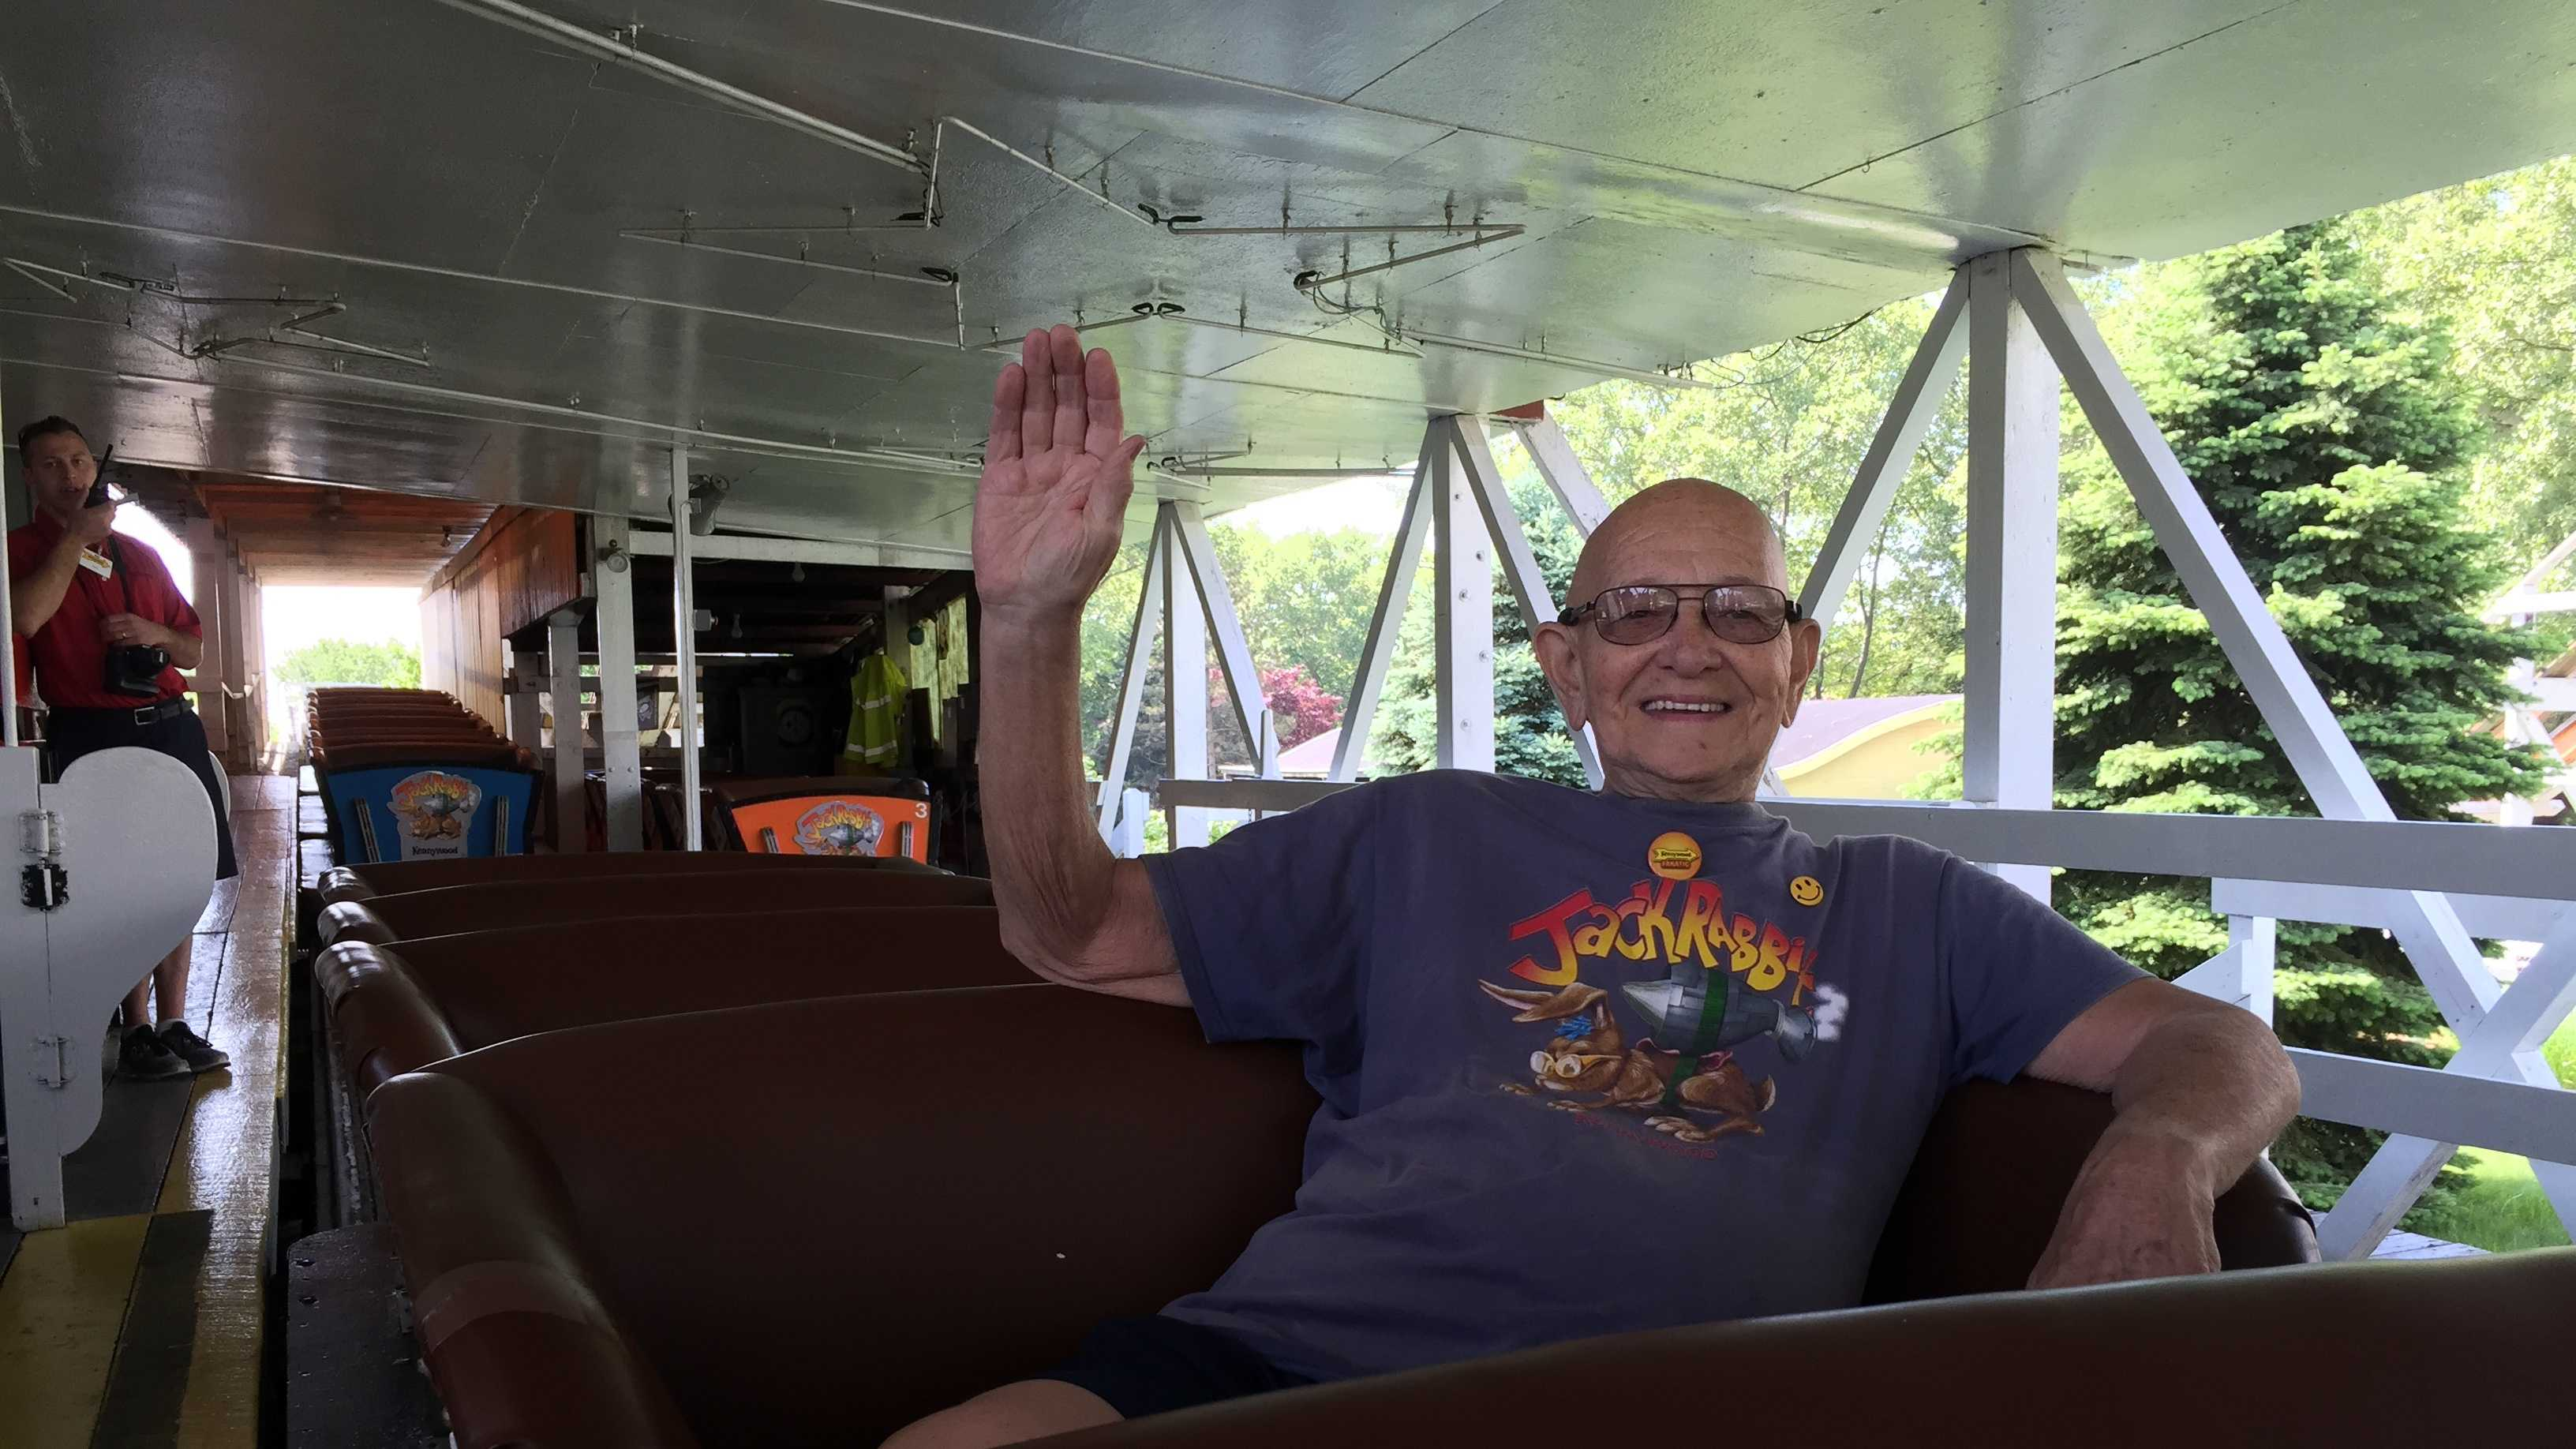 Kennywood's Jack Rabbit roller coaster celebrates its 95th birthday this week, and is doing so with the help of its biggest fan: Vic Kleman.